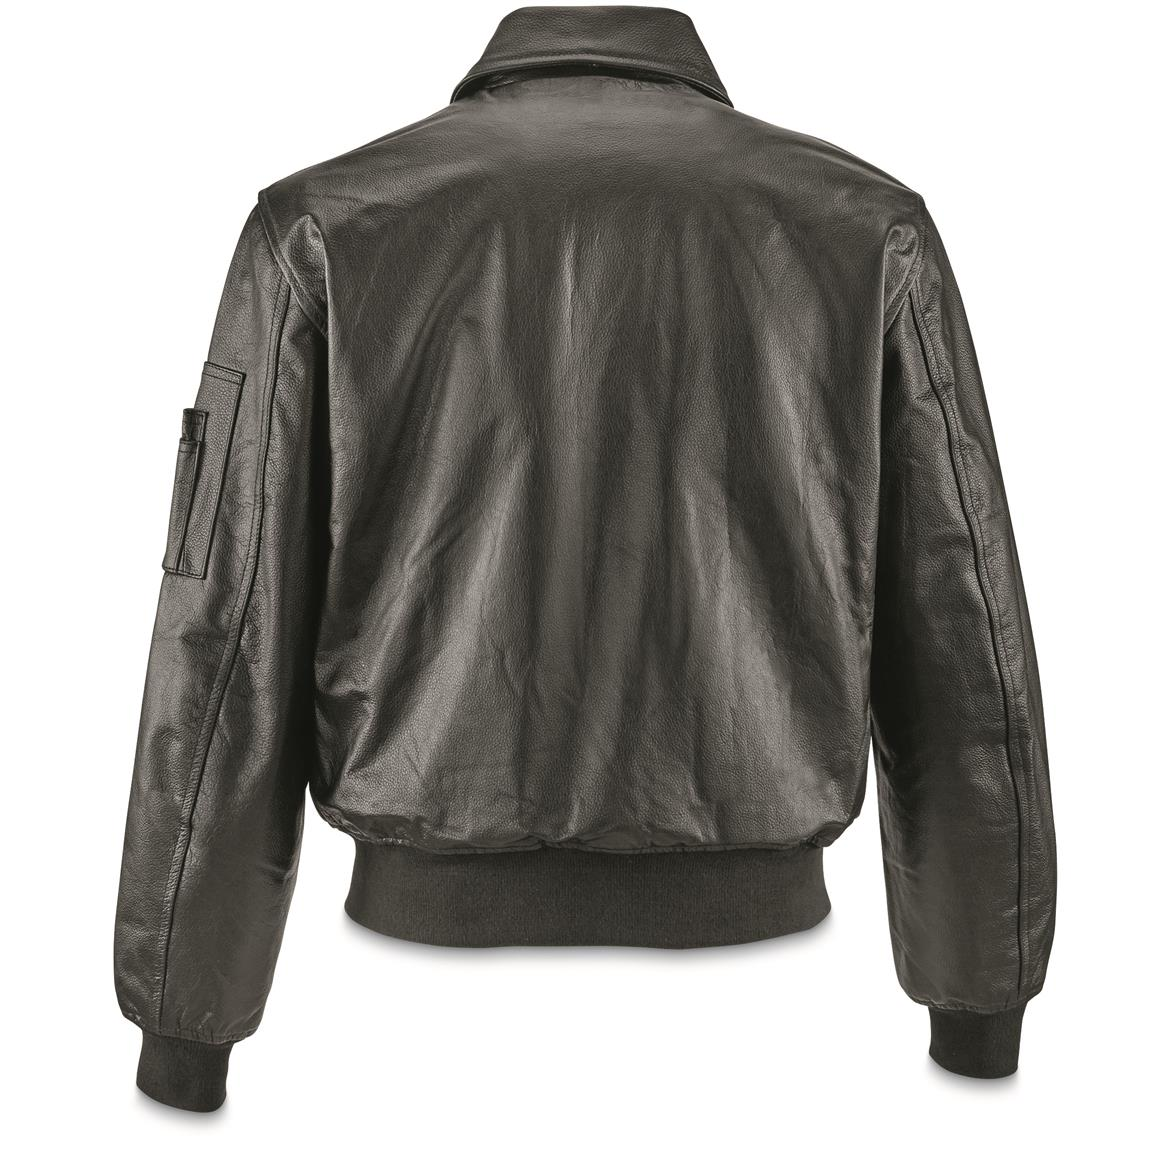 This 100% Leather Flight Jacket looks absolutely dashing on the outside